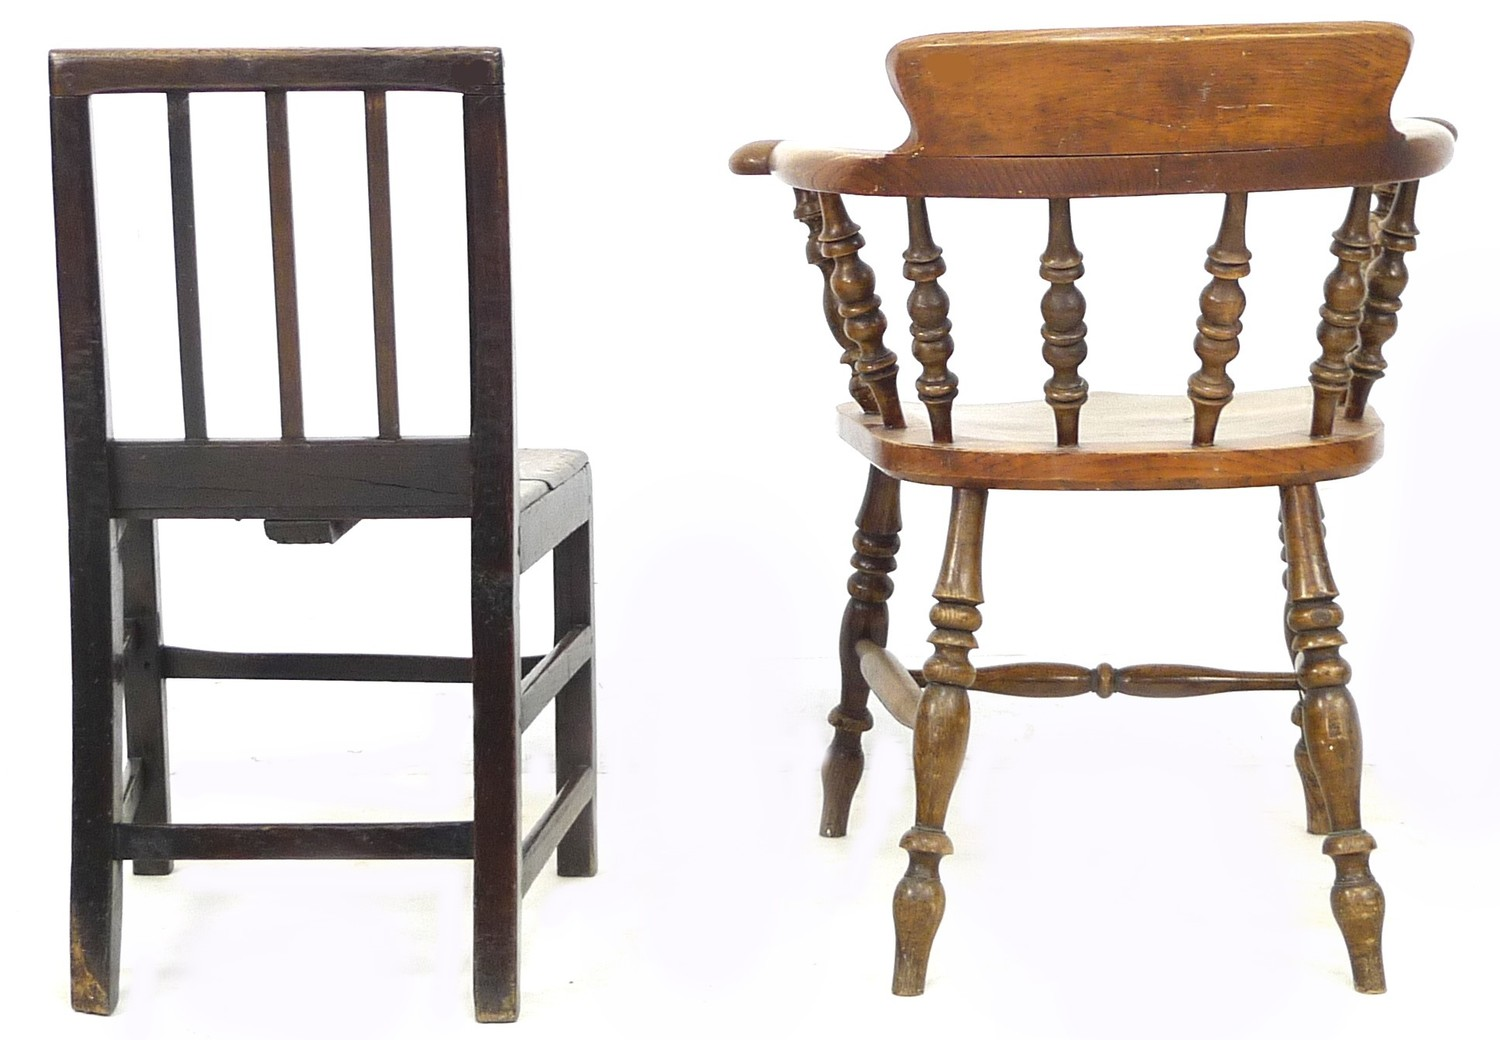 A Scandinavian oak nursery chair, with three rail back, 44 by 48 by 78cm high, together with a - Image 3 of 4